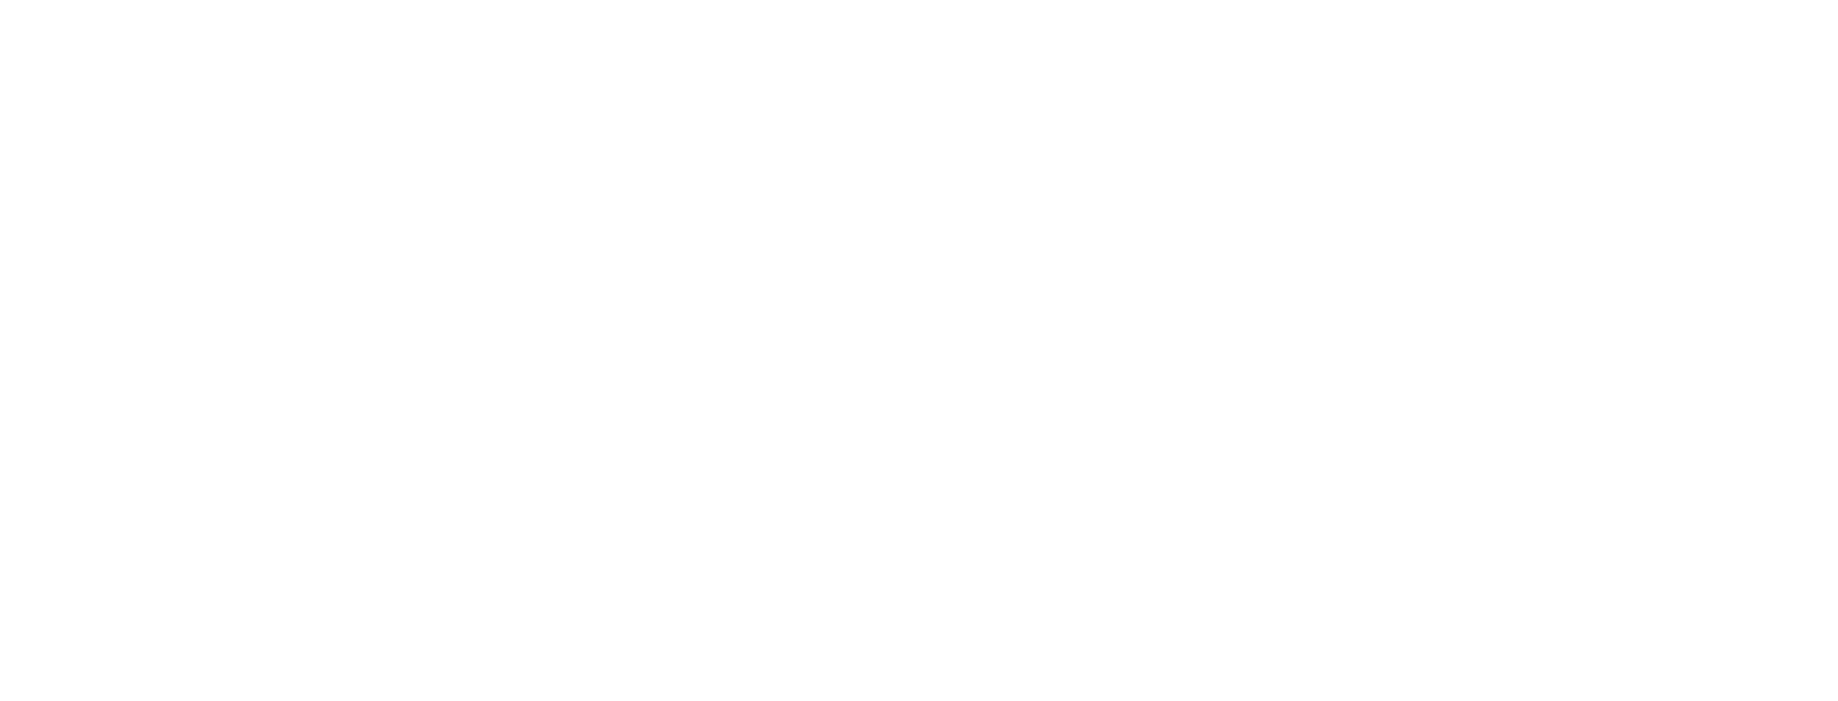 Cátedra Bourgeois – Pichat